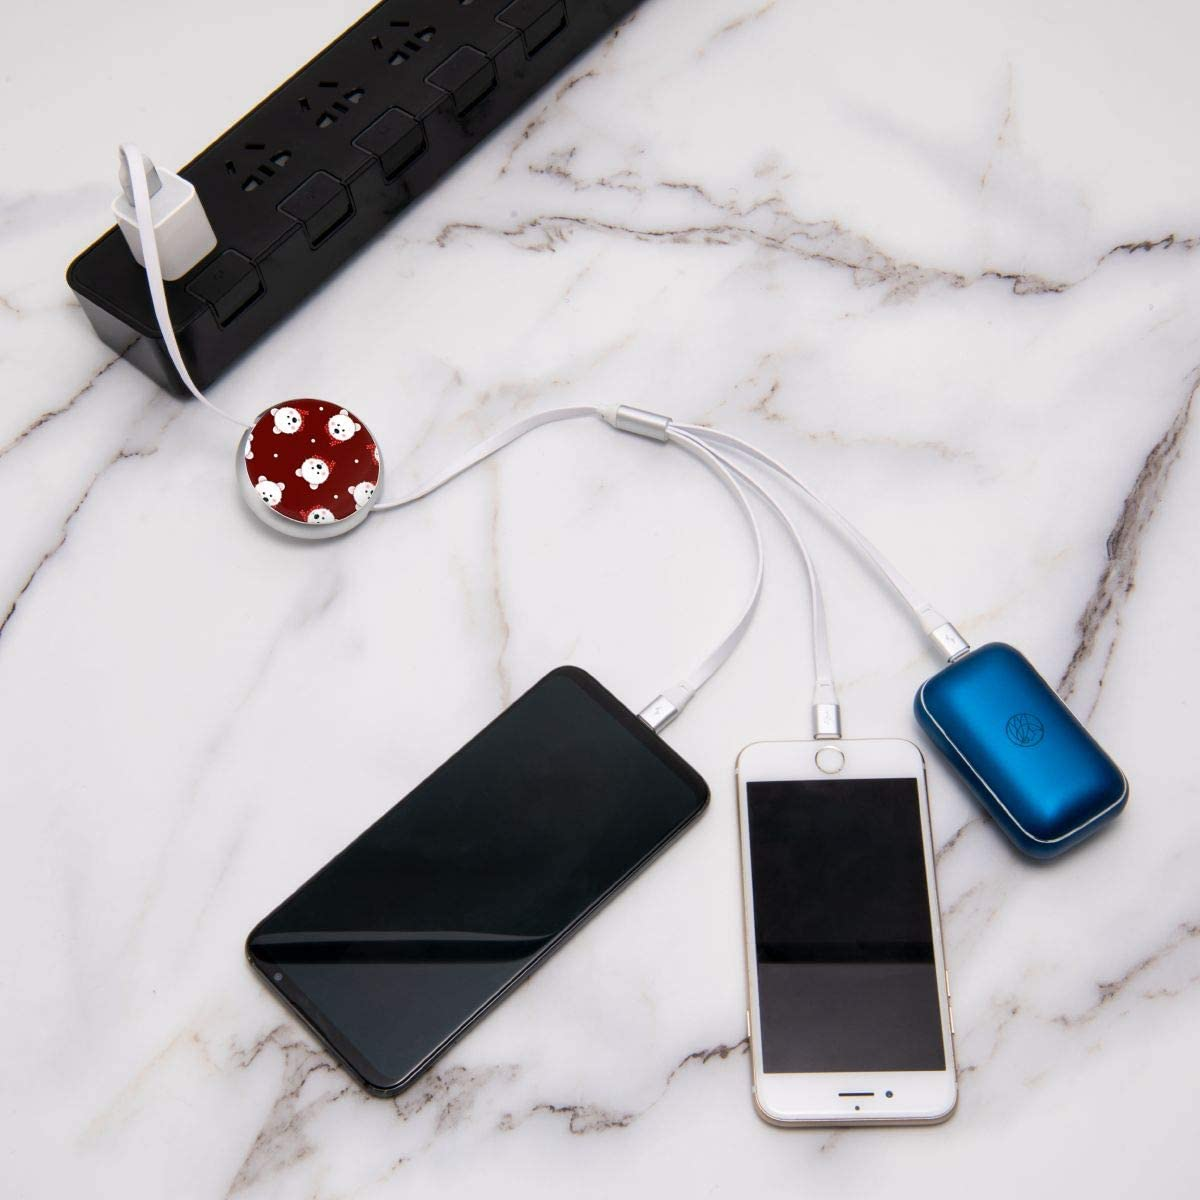 Retractable Multi USB Charging Cable Fast Charger Cord 3 in 1 White Bear with Red Scarf Polka Dot with Type C Micro USB Port Connectors